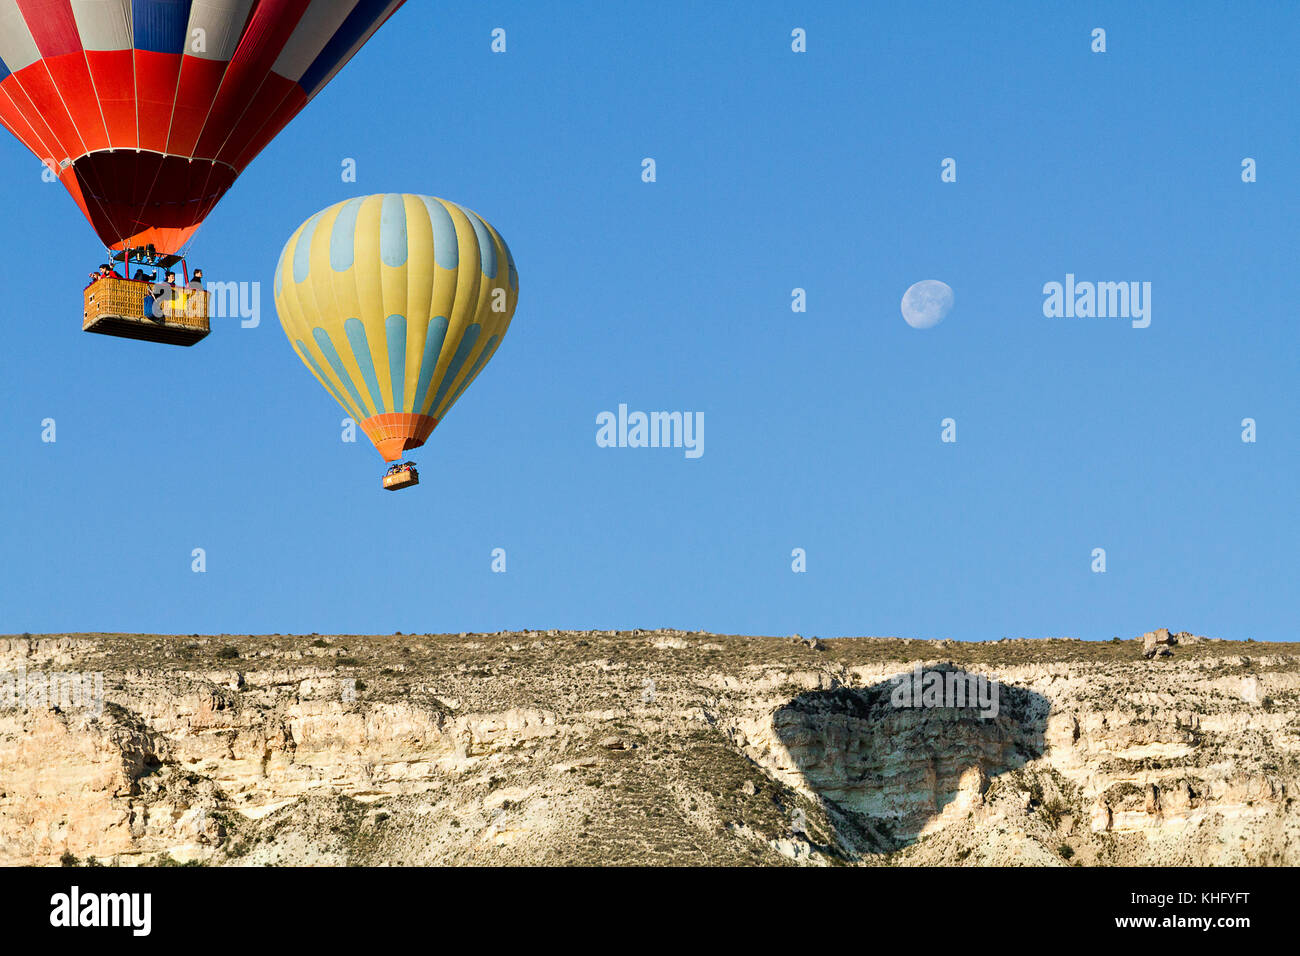 Hot air balloons in the sky with the full moon, in Cappadocia, Turkey. - Stock Image